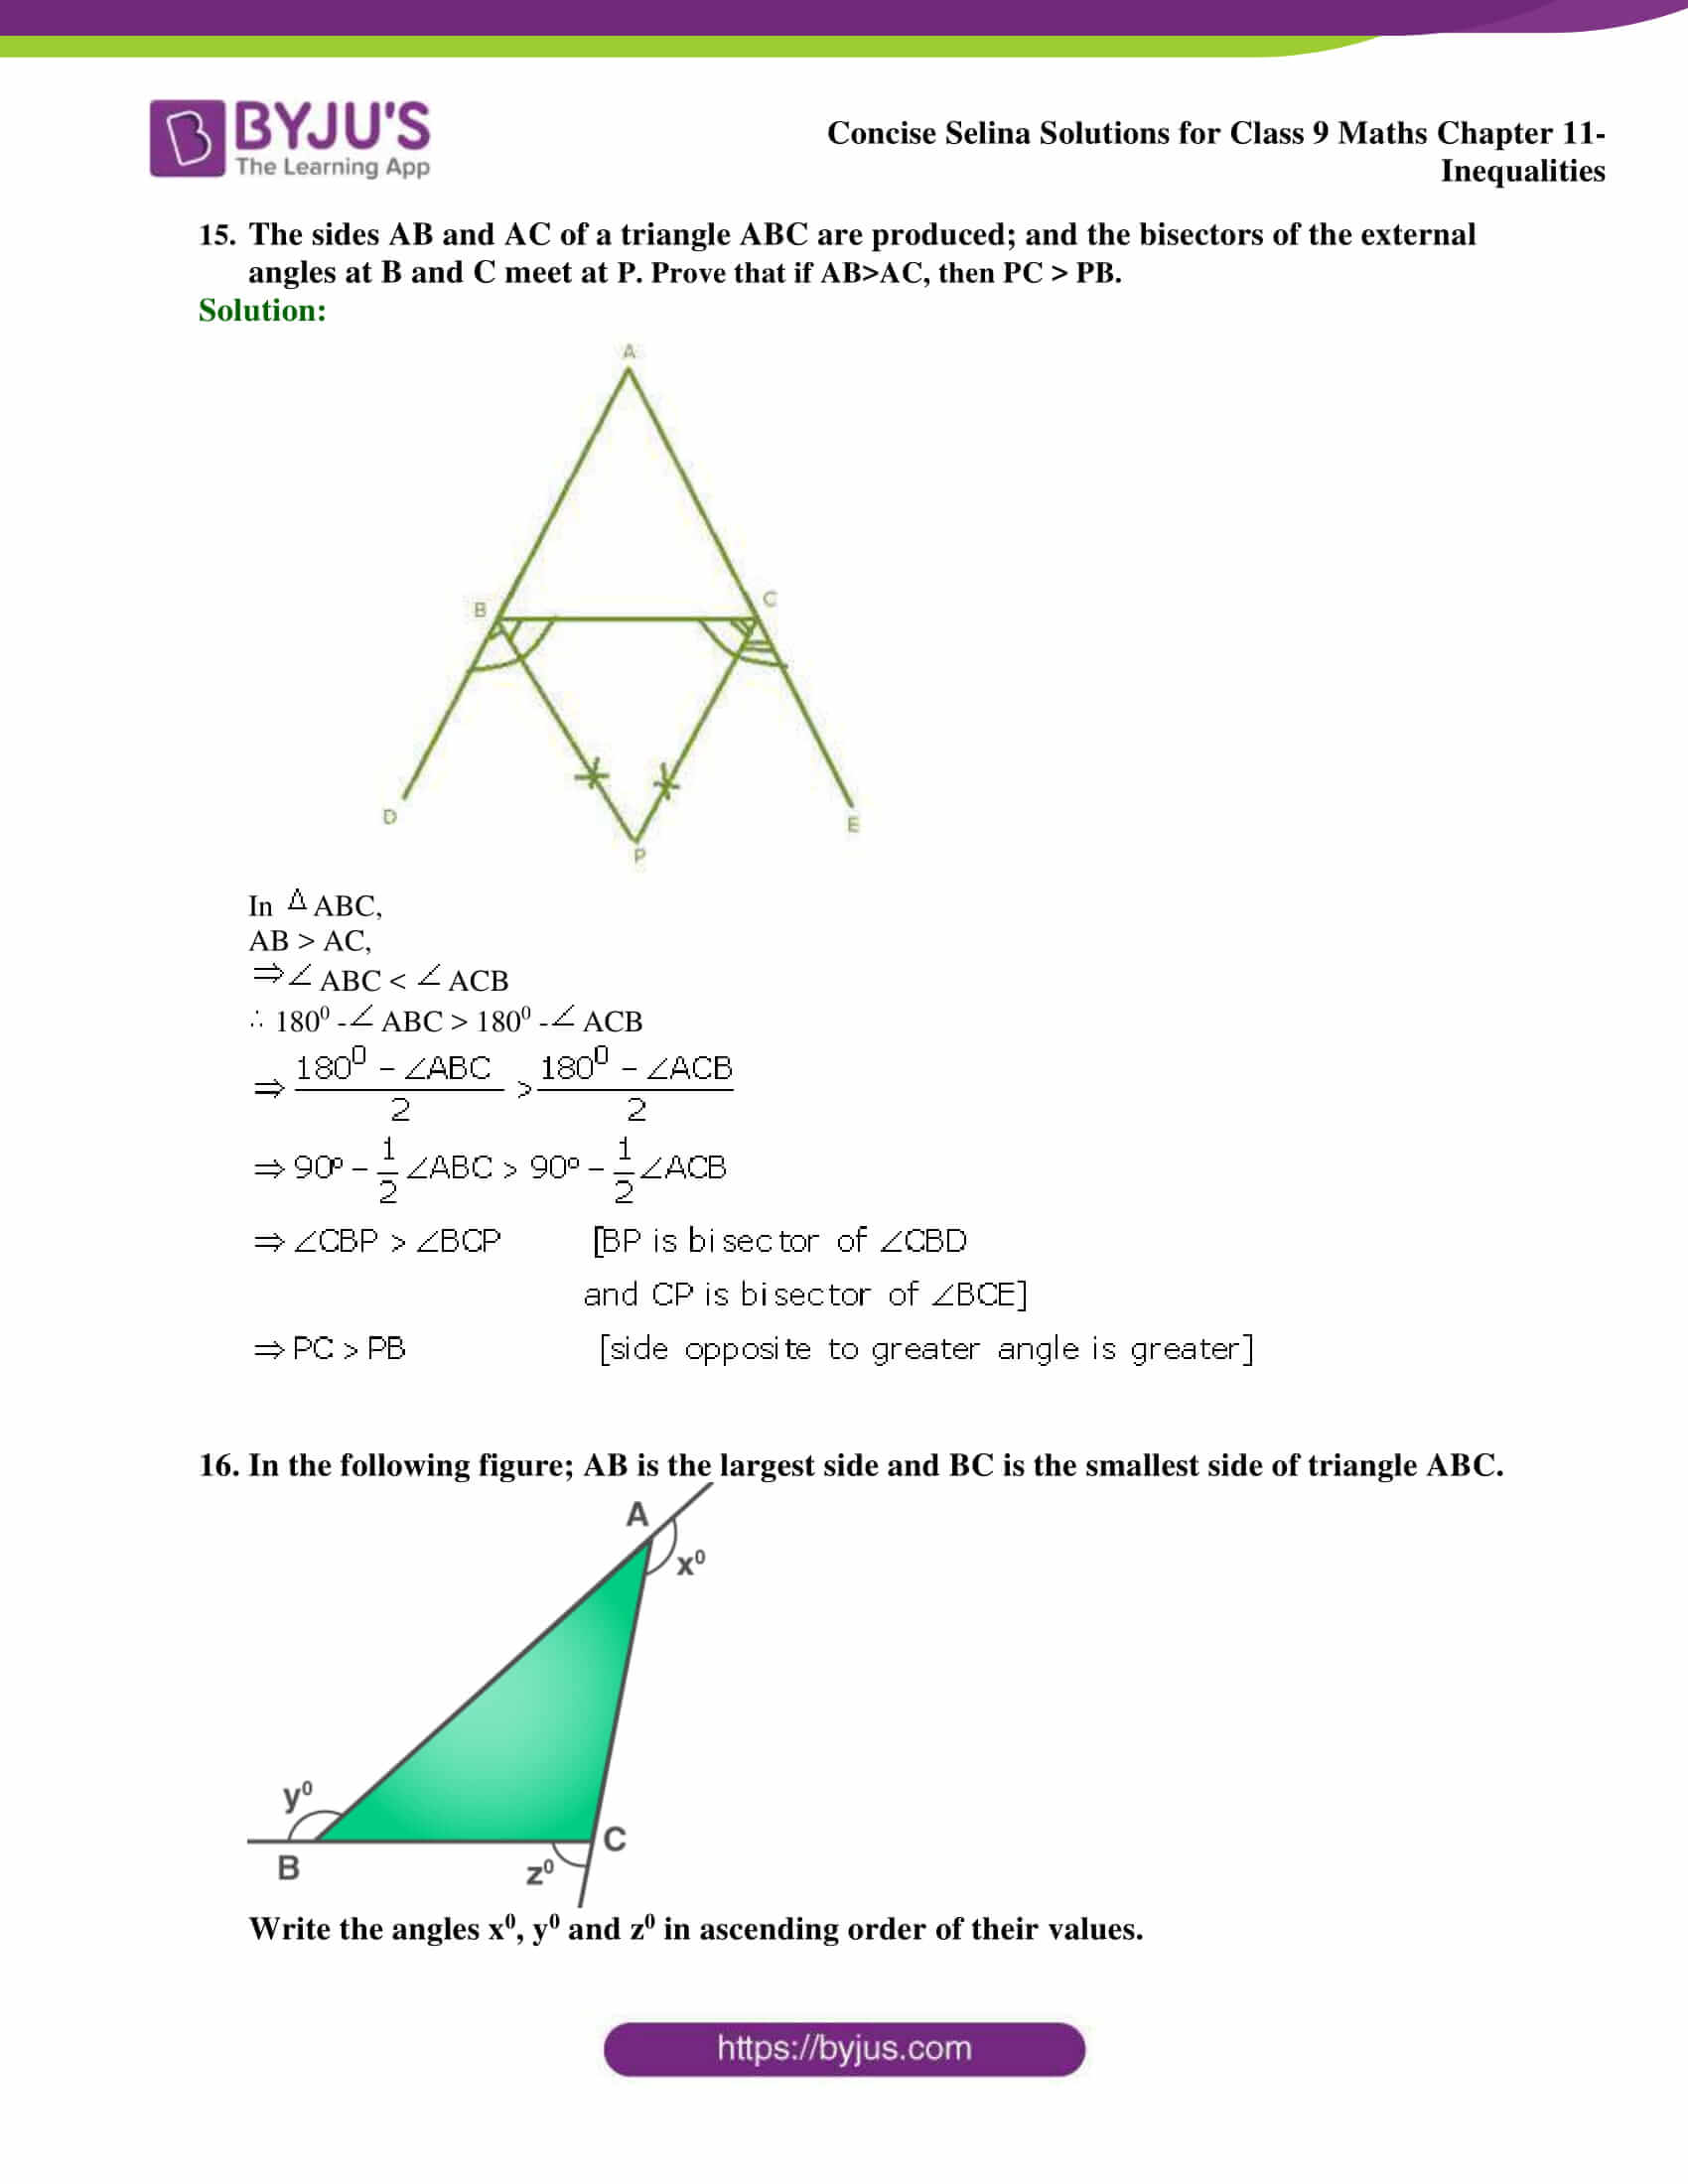 selina Solutions for Class 9 Maths Chapter 11 part 13